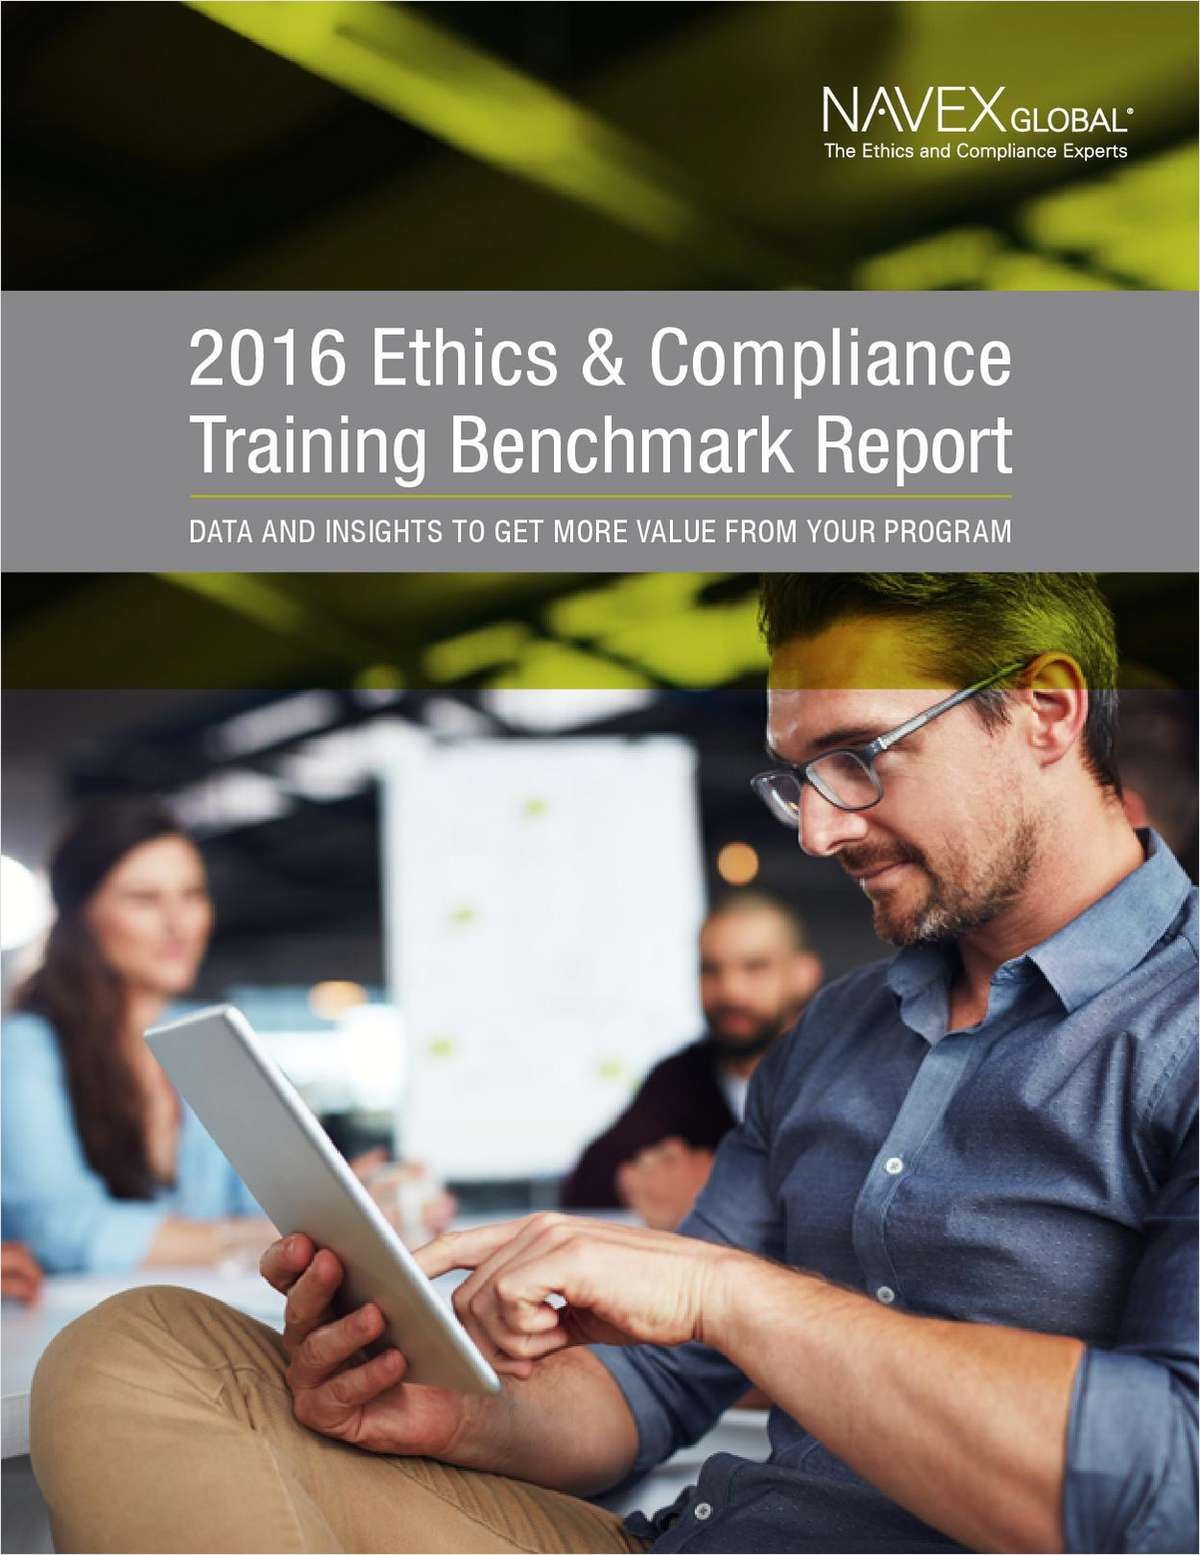 2016 Ethics & Compliance Training Benchmark Report